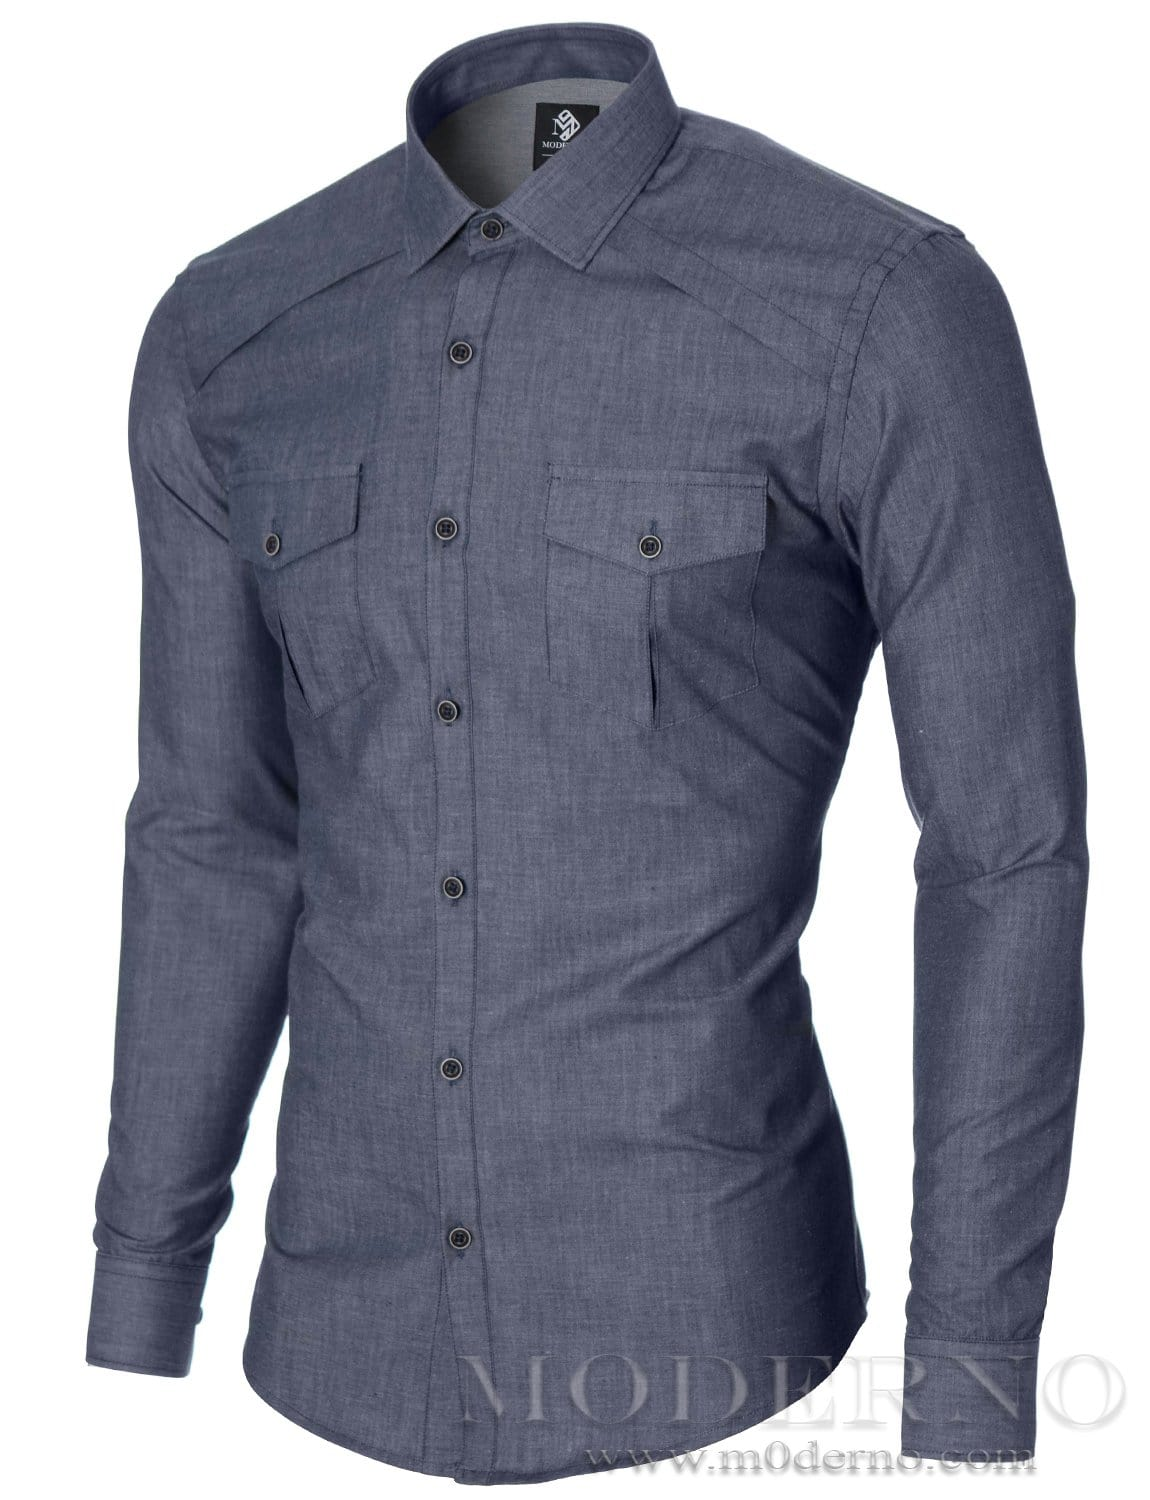 Mens slim fit casual button up shirt whit 2 pockets blue for Button up mens shirt